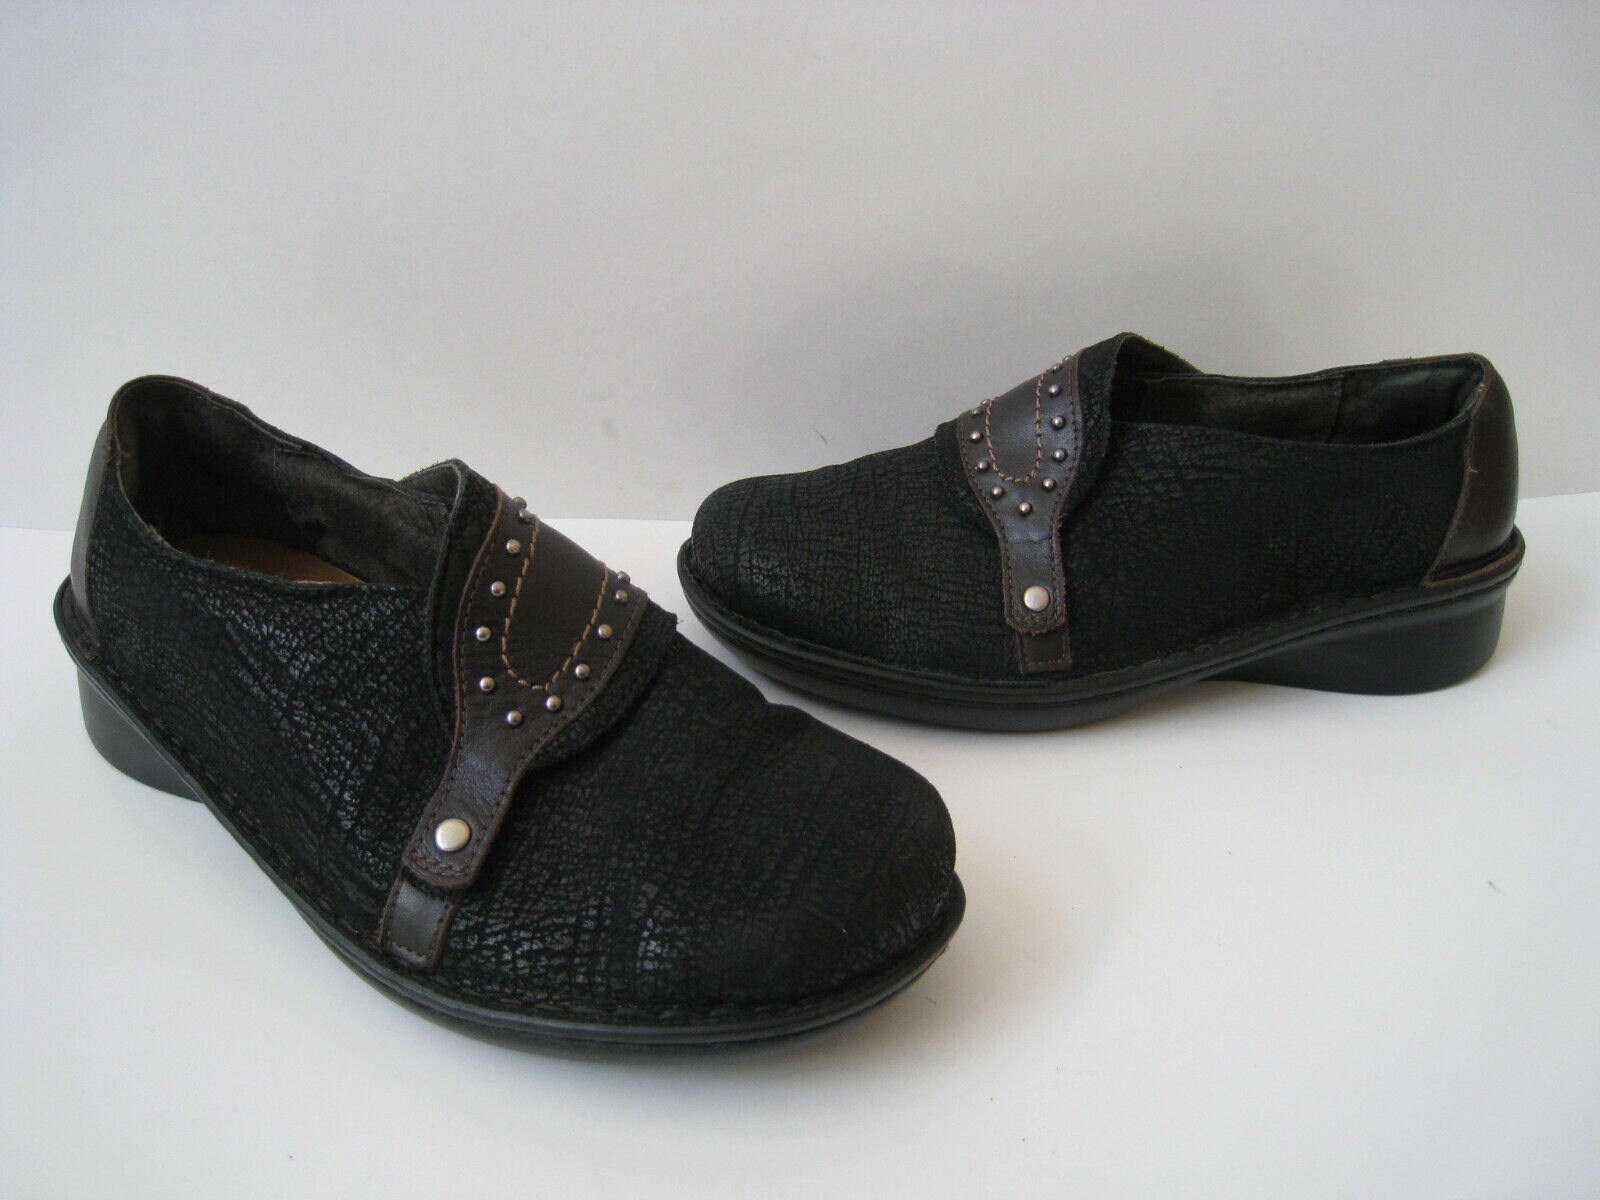 NAOT BLACK SUEDE BROWN STUDDED LEATHER SHOES SIZE US 3 EUR 37 HOT MADE IN ISRAEL